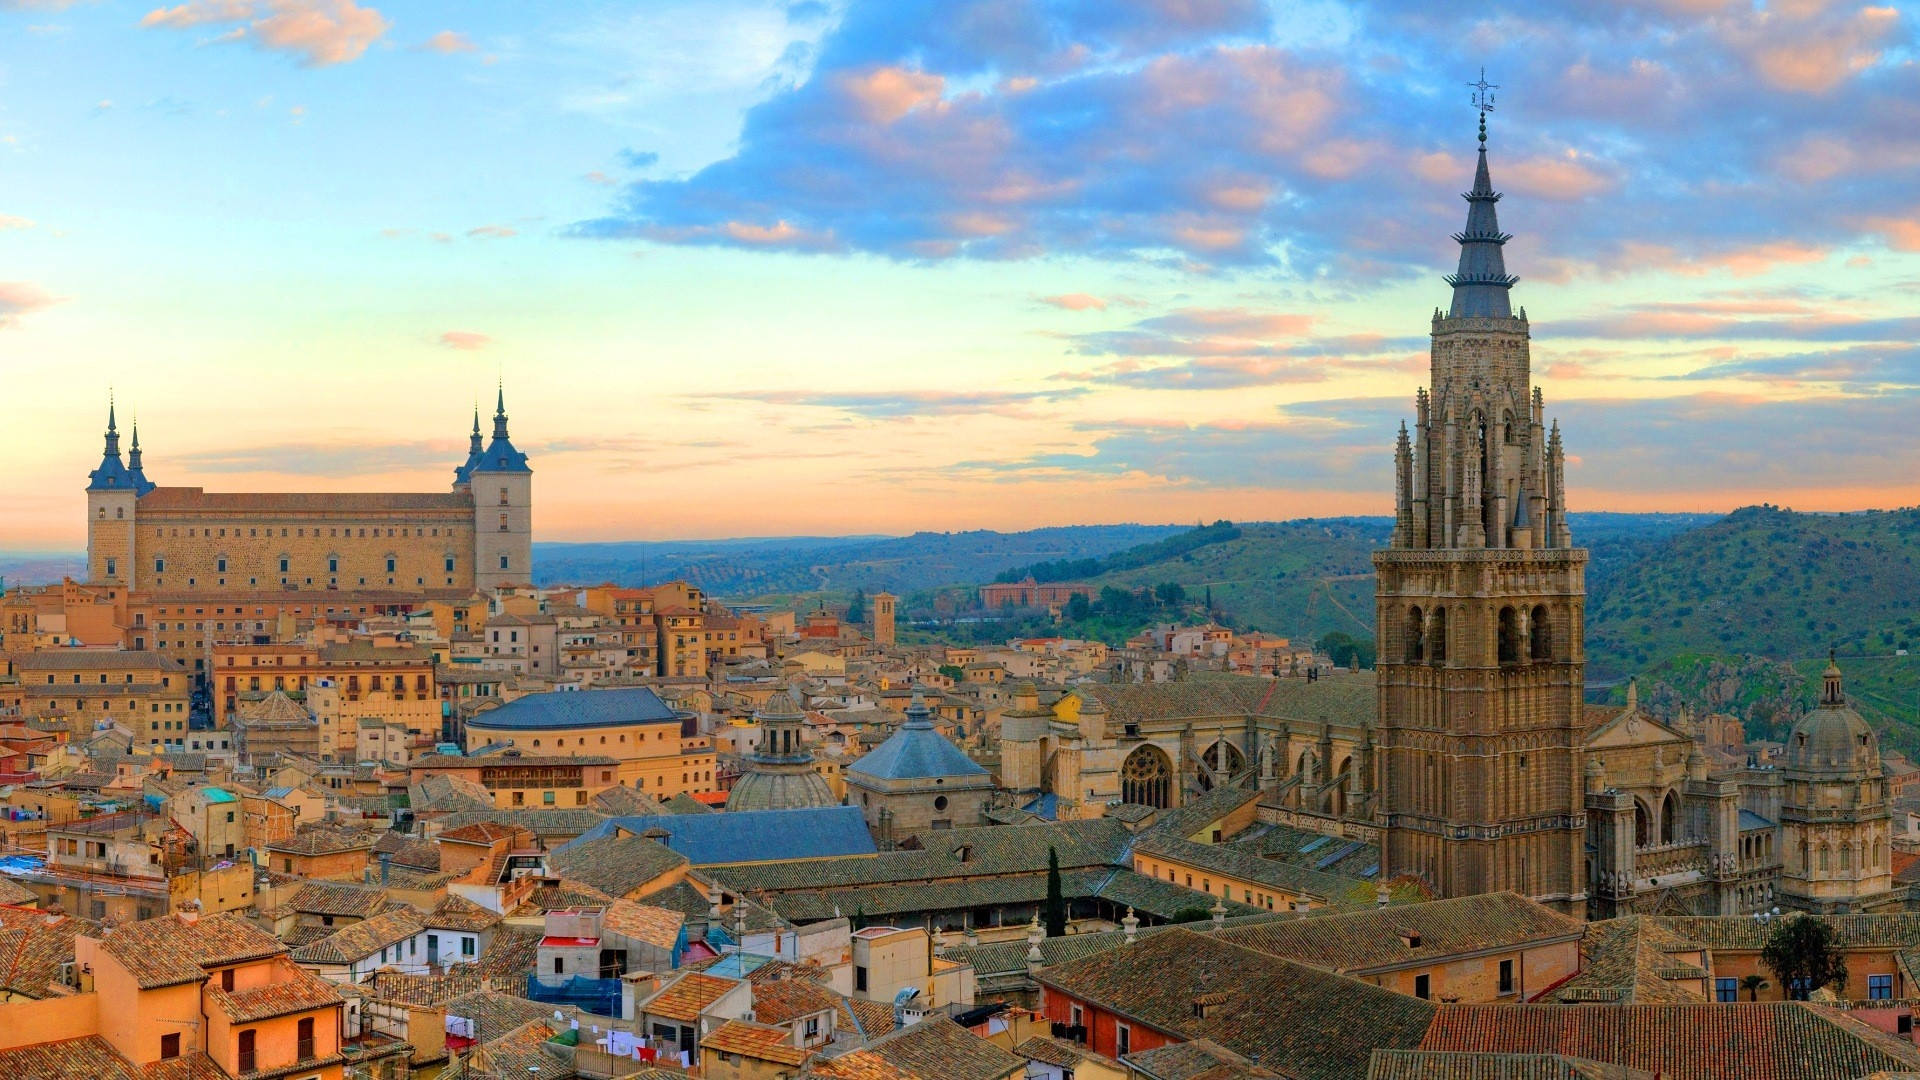 Earnings Disclaimer >> Download Wallpaper 1920x1080 spain, panorama, toledo Full HD 1080p HD Background